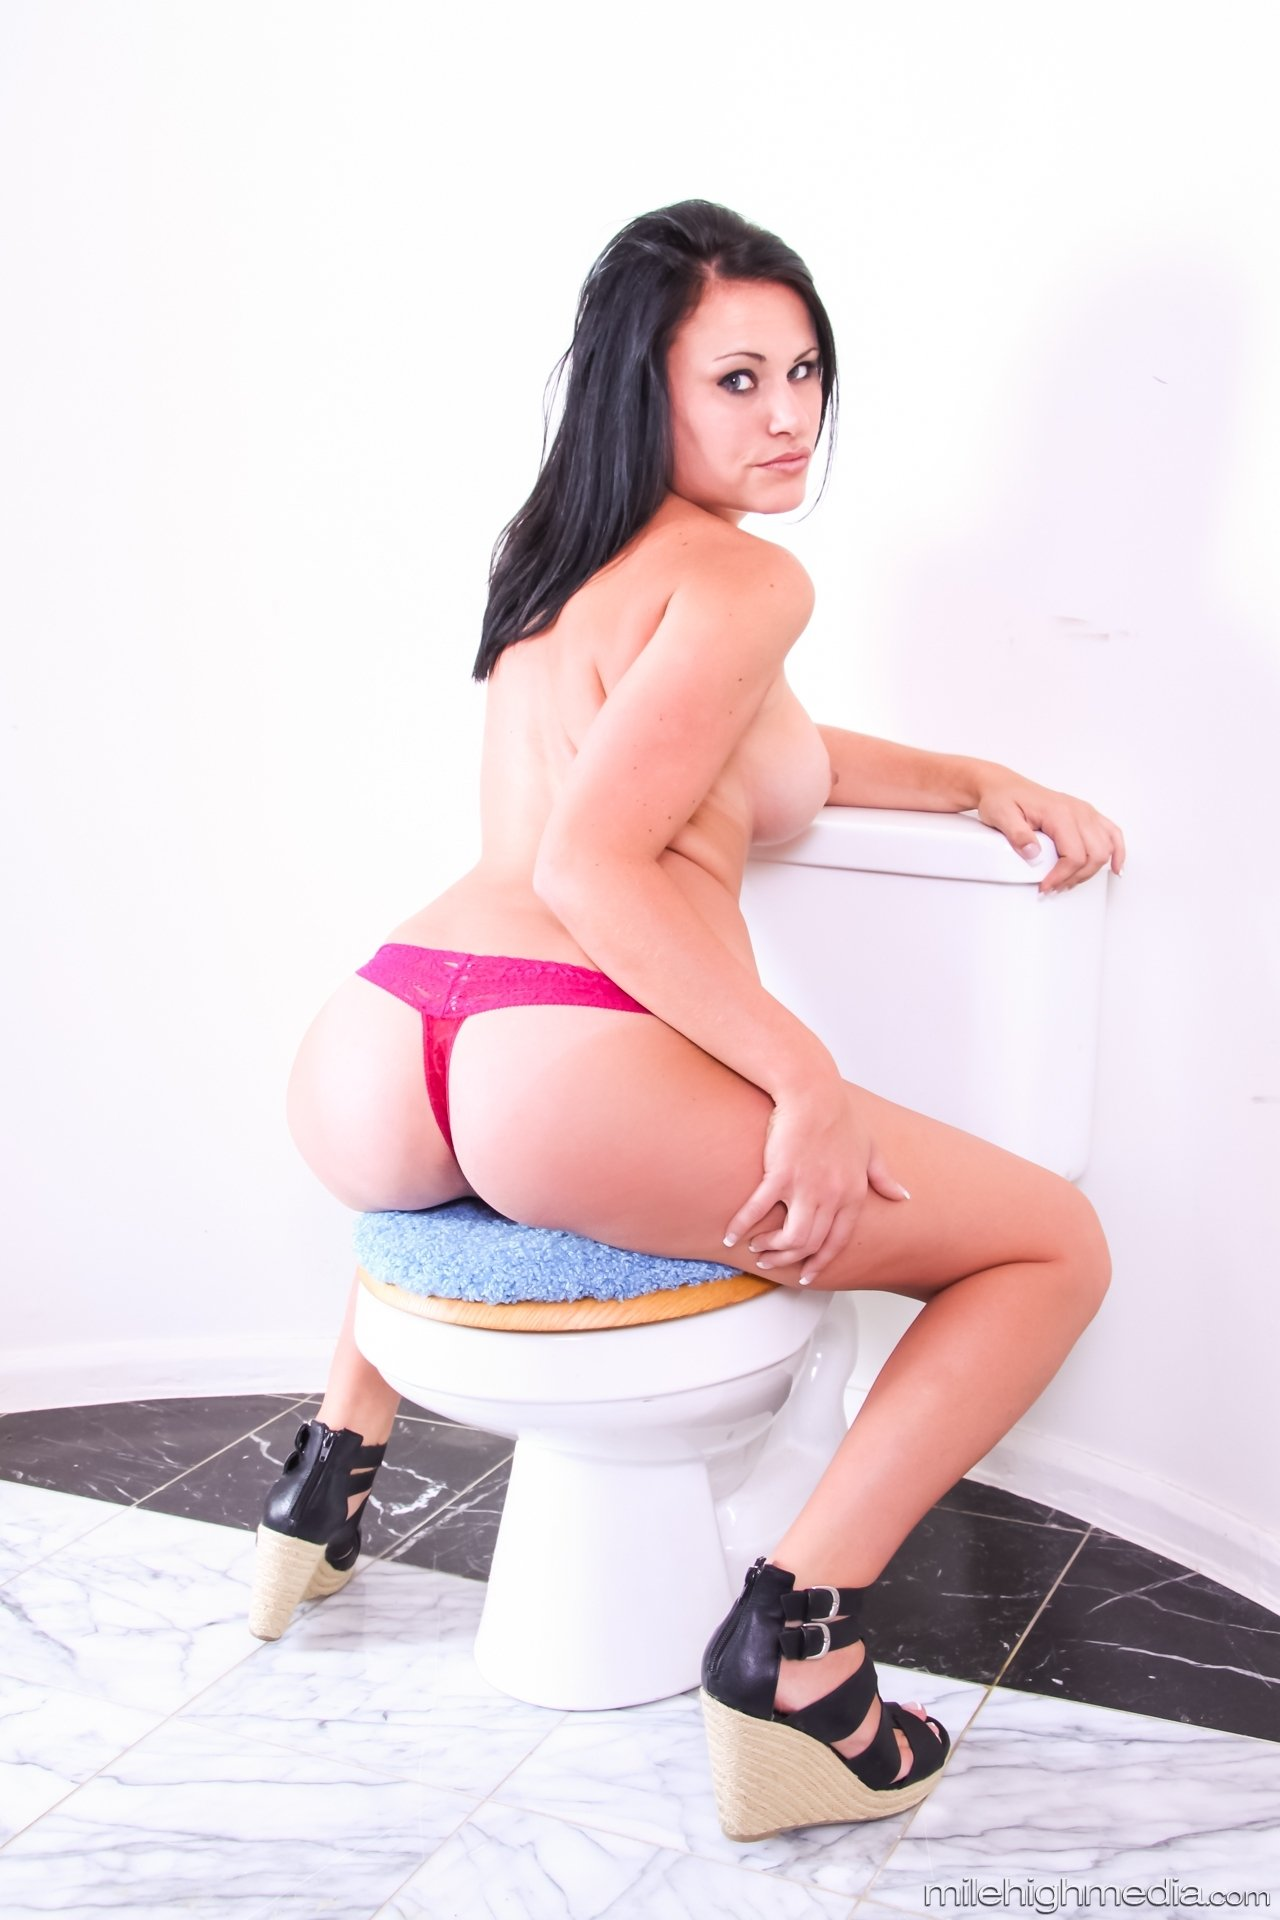 Teen young sexy pics #1